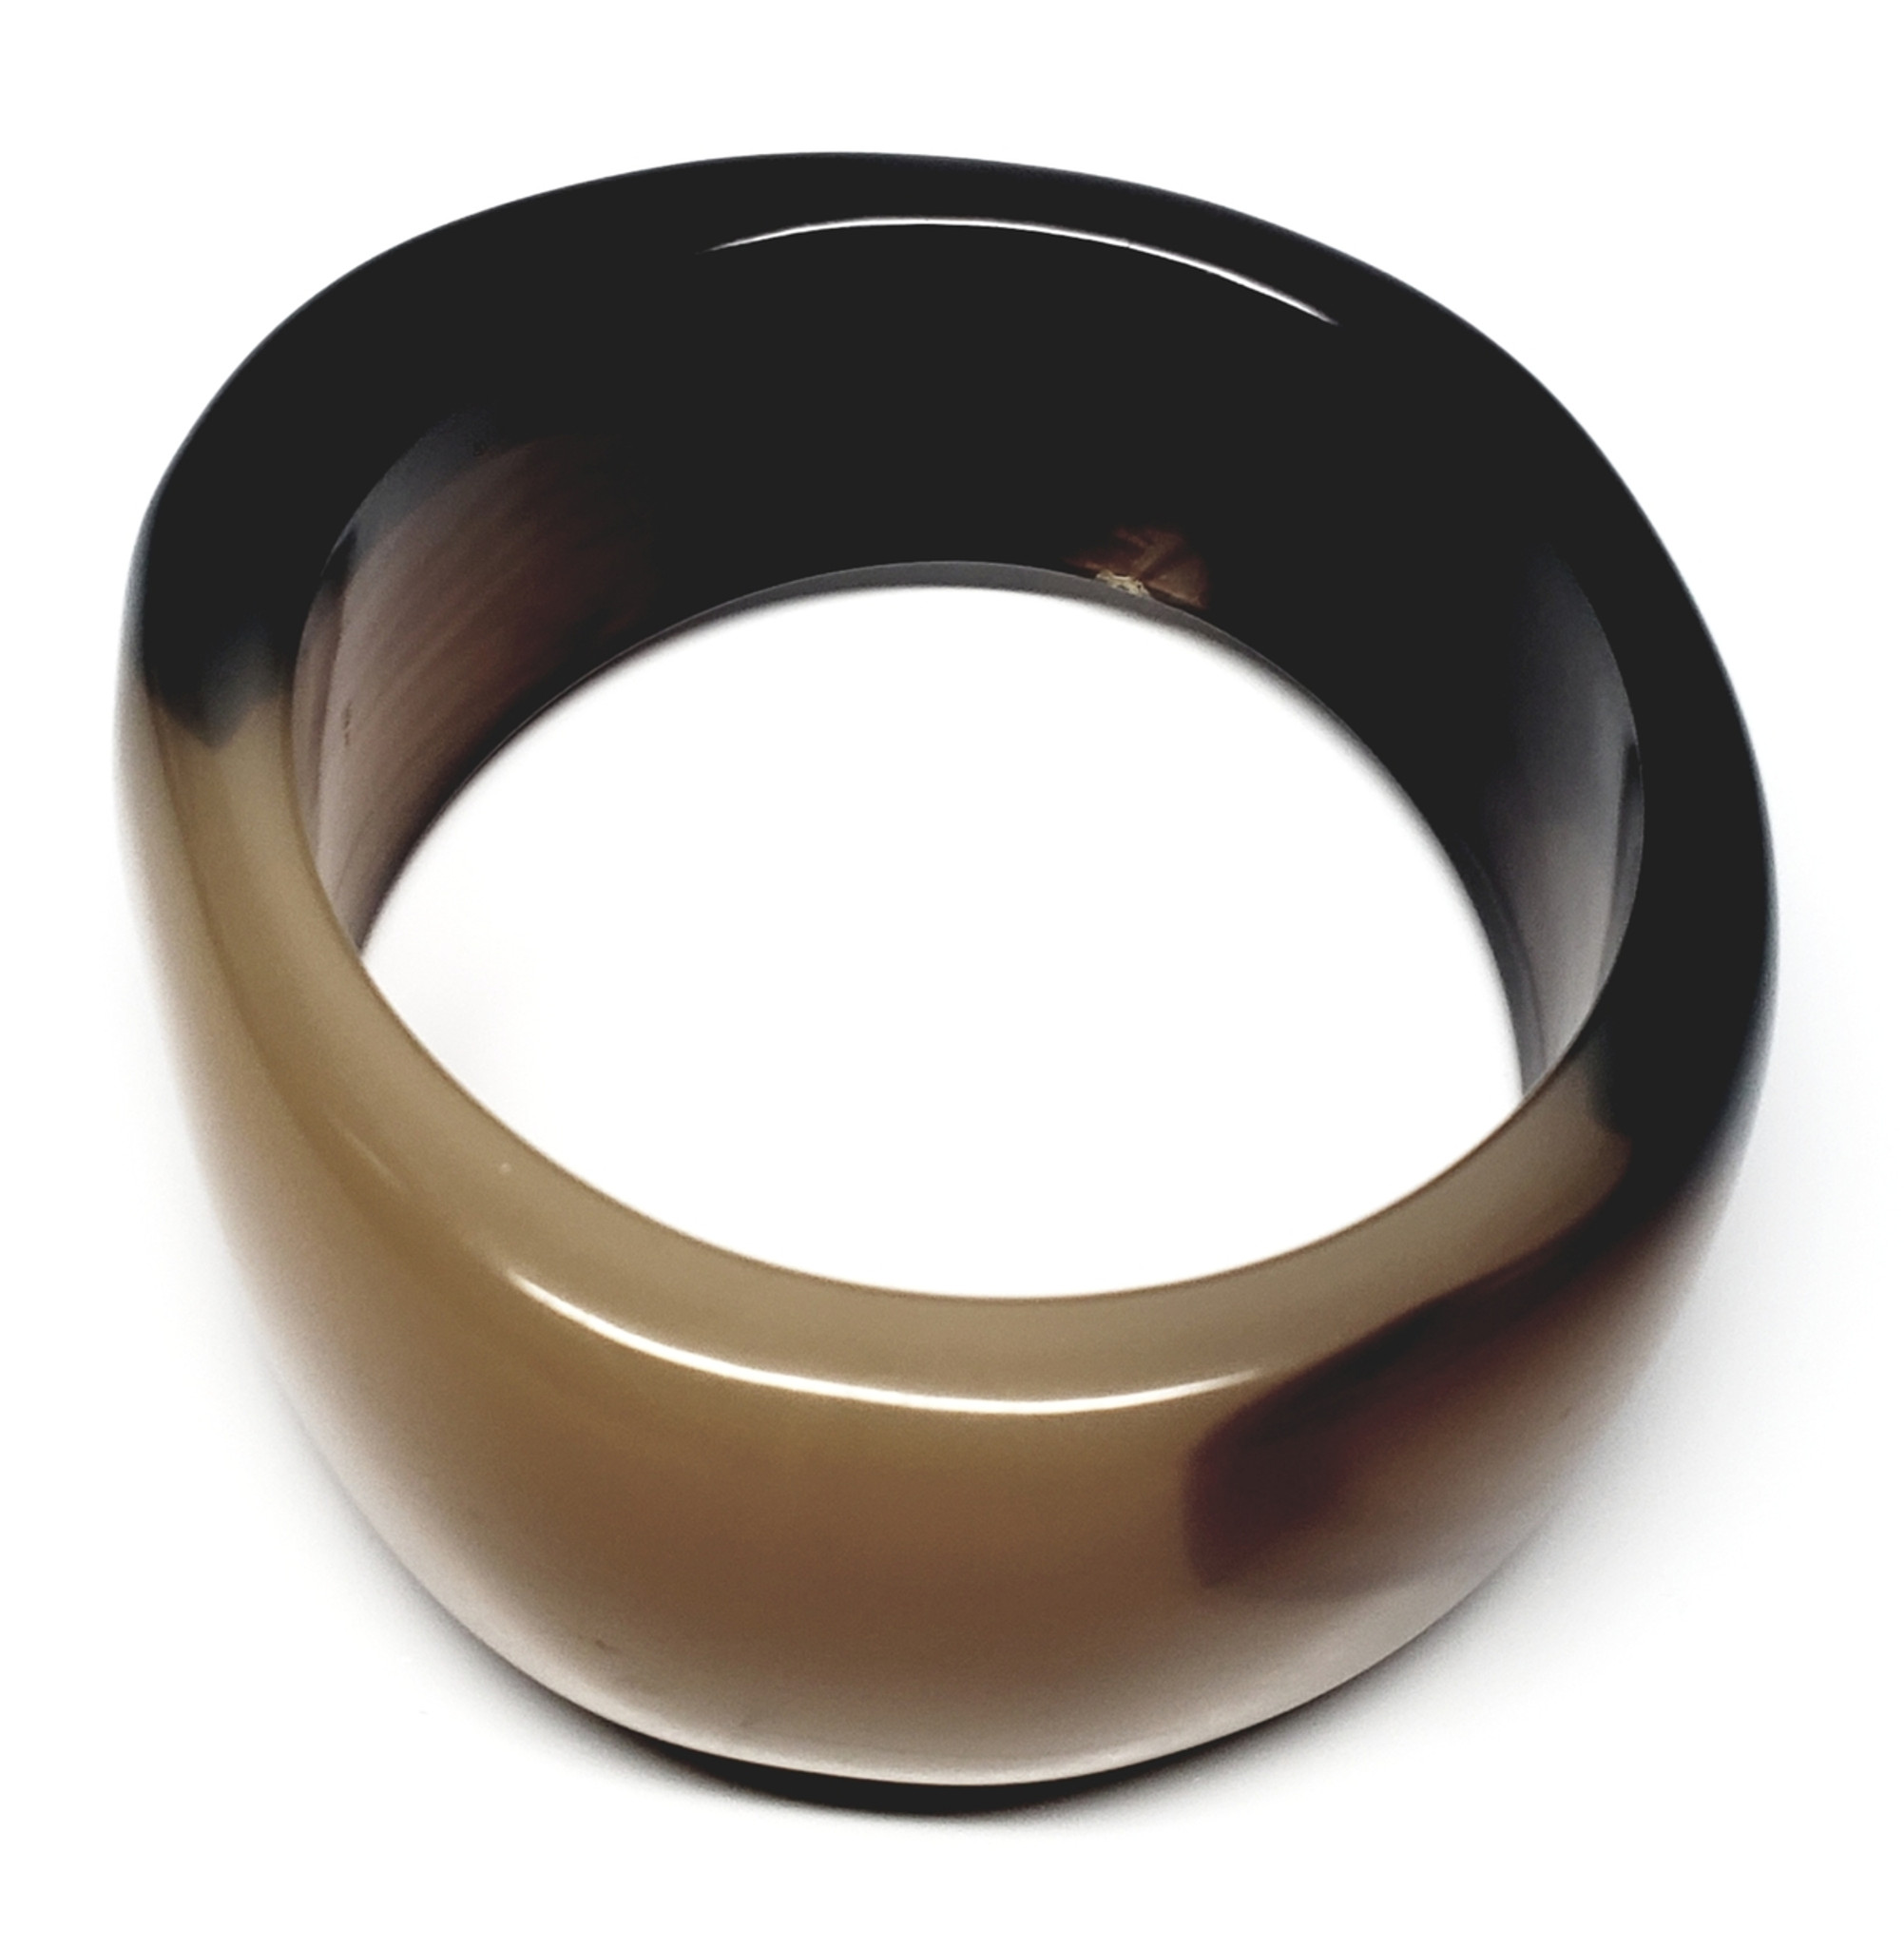 4f8313b426aeb Bakelite Big Chocolate Caramel Clunker Bangle Bracelet - Vintage